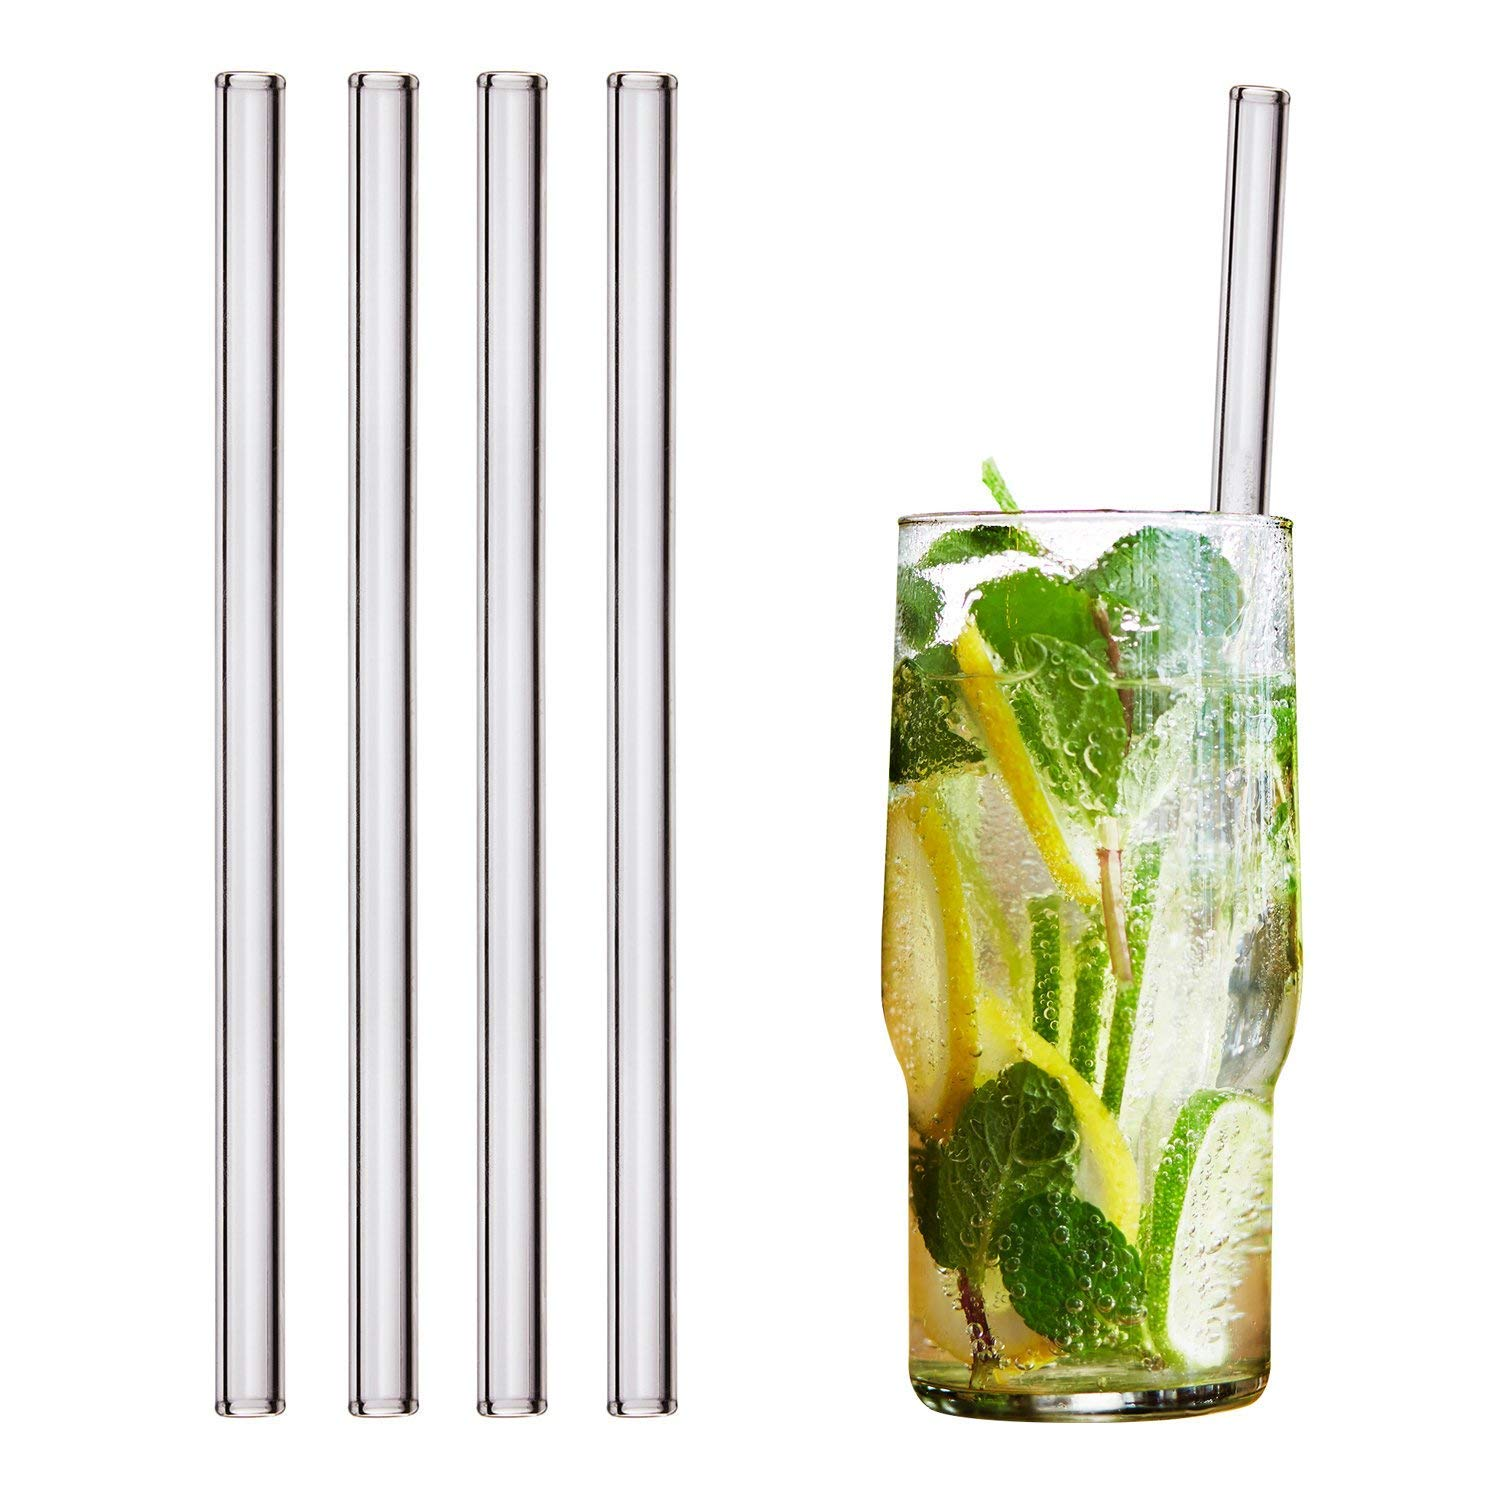 HALM Glass Straws - 4 Reusable Drinking Straws + Plastic-Free Cleaning Brush - Made in Germany - Dishwasher Safe - Eco-Friendly - 20 cm (8 in) x 0.9 cm - Straight - Perfect for Smoothies, Cocktails